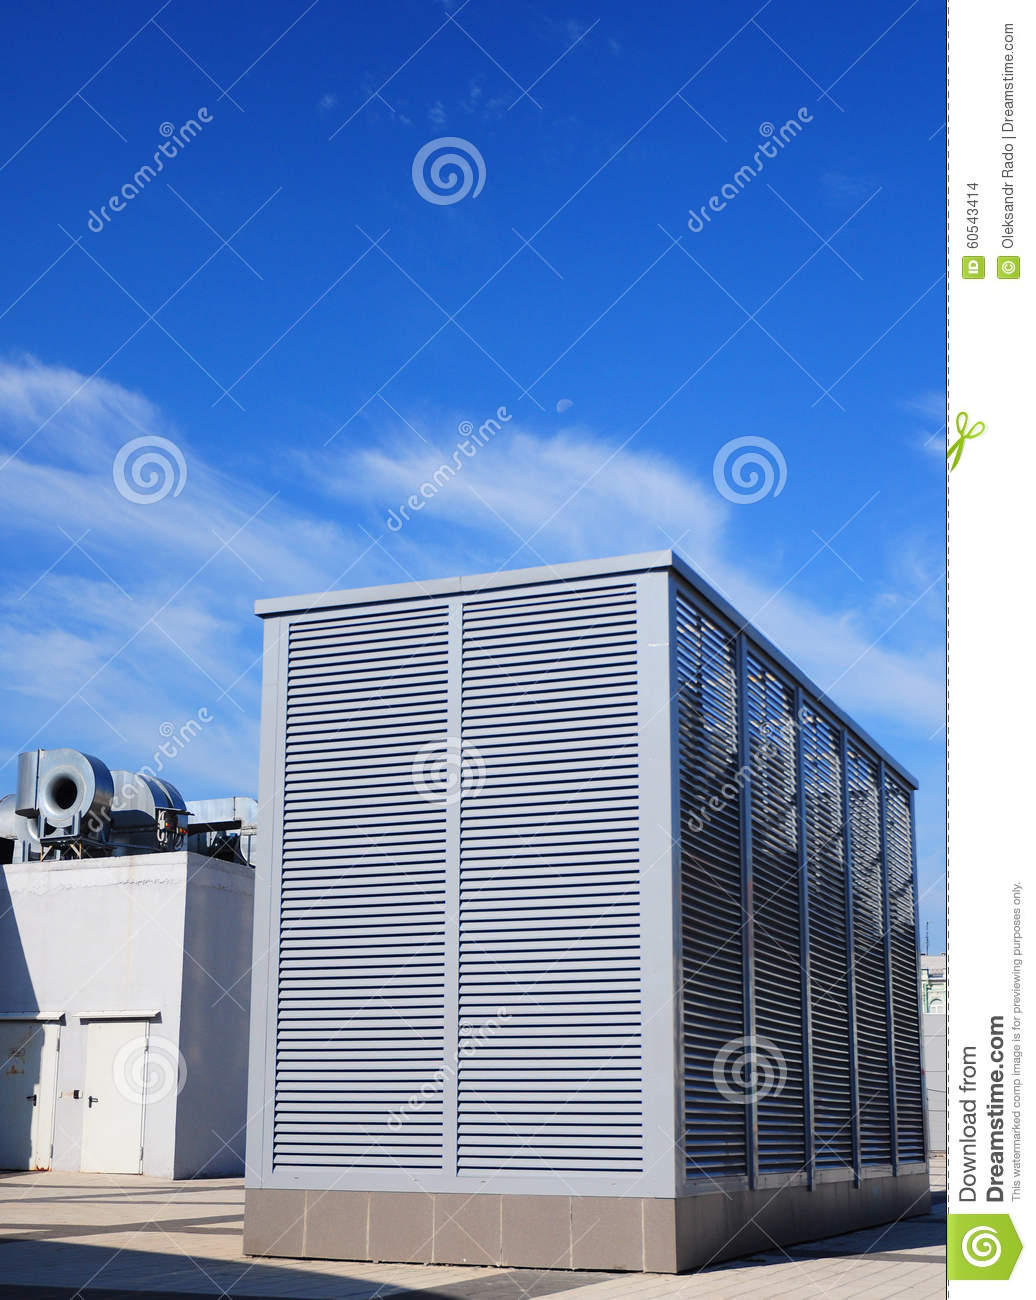 Stock Photo: Industrial air conditioning and ventilation systems on  #154CB6